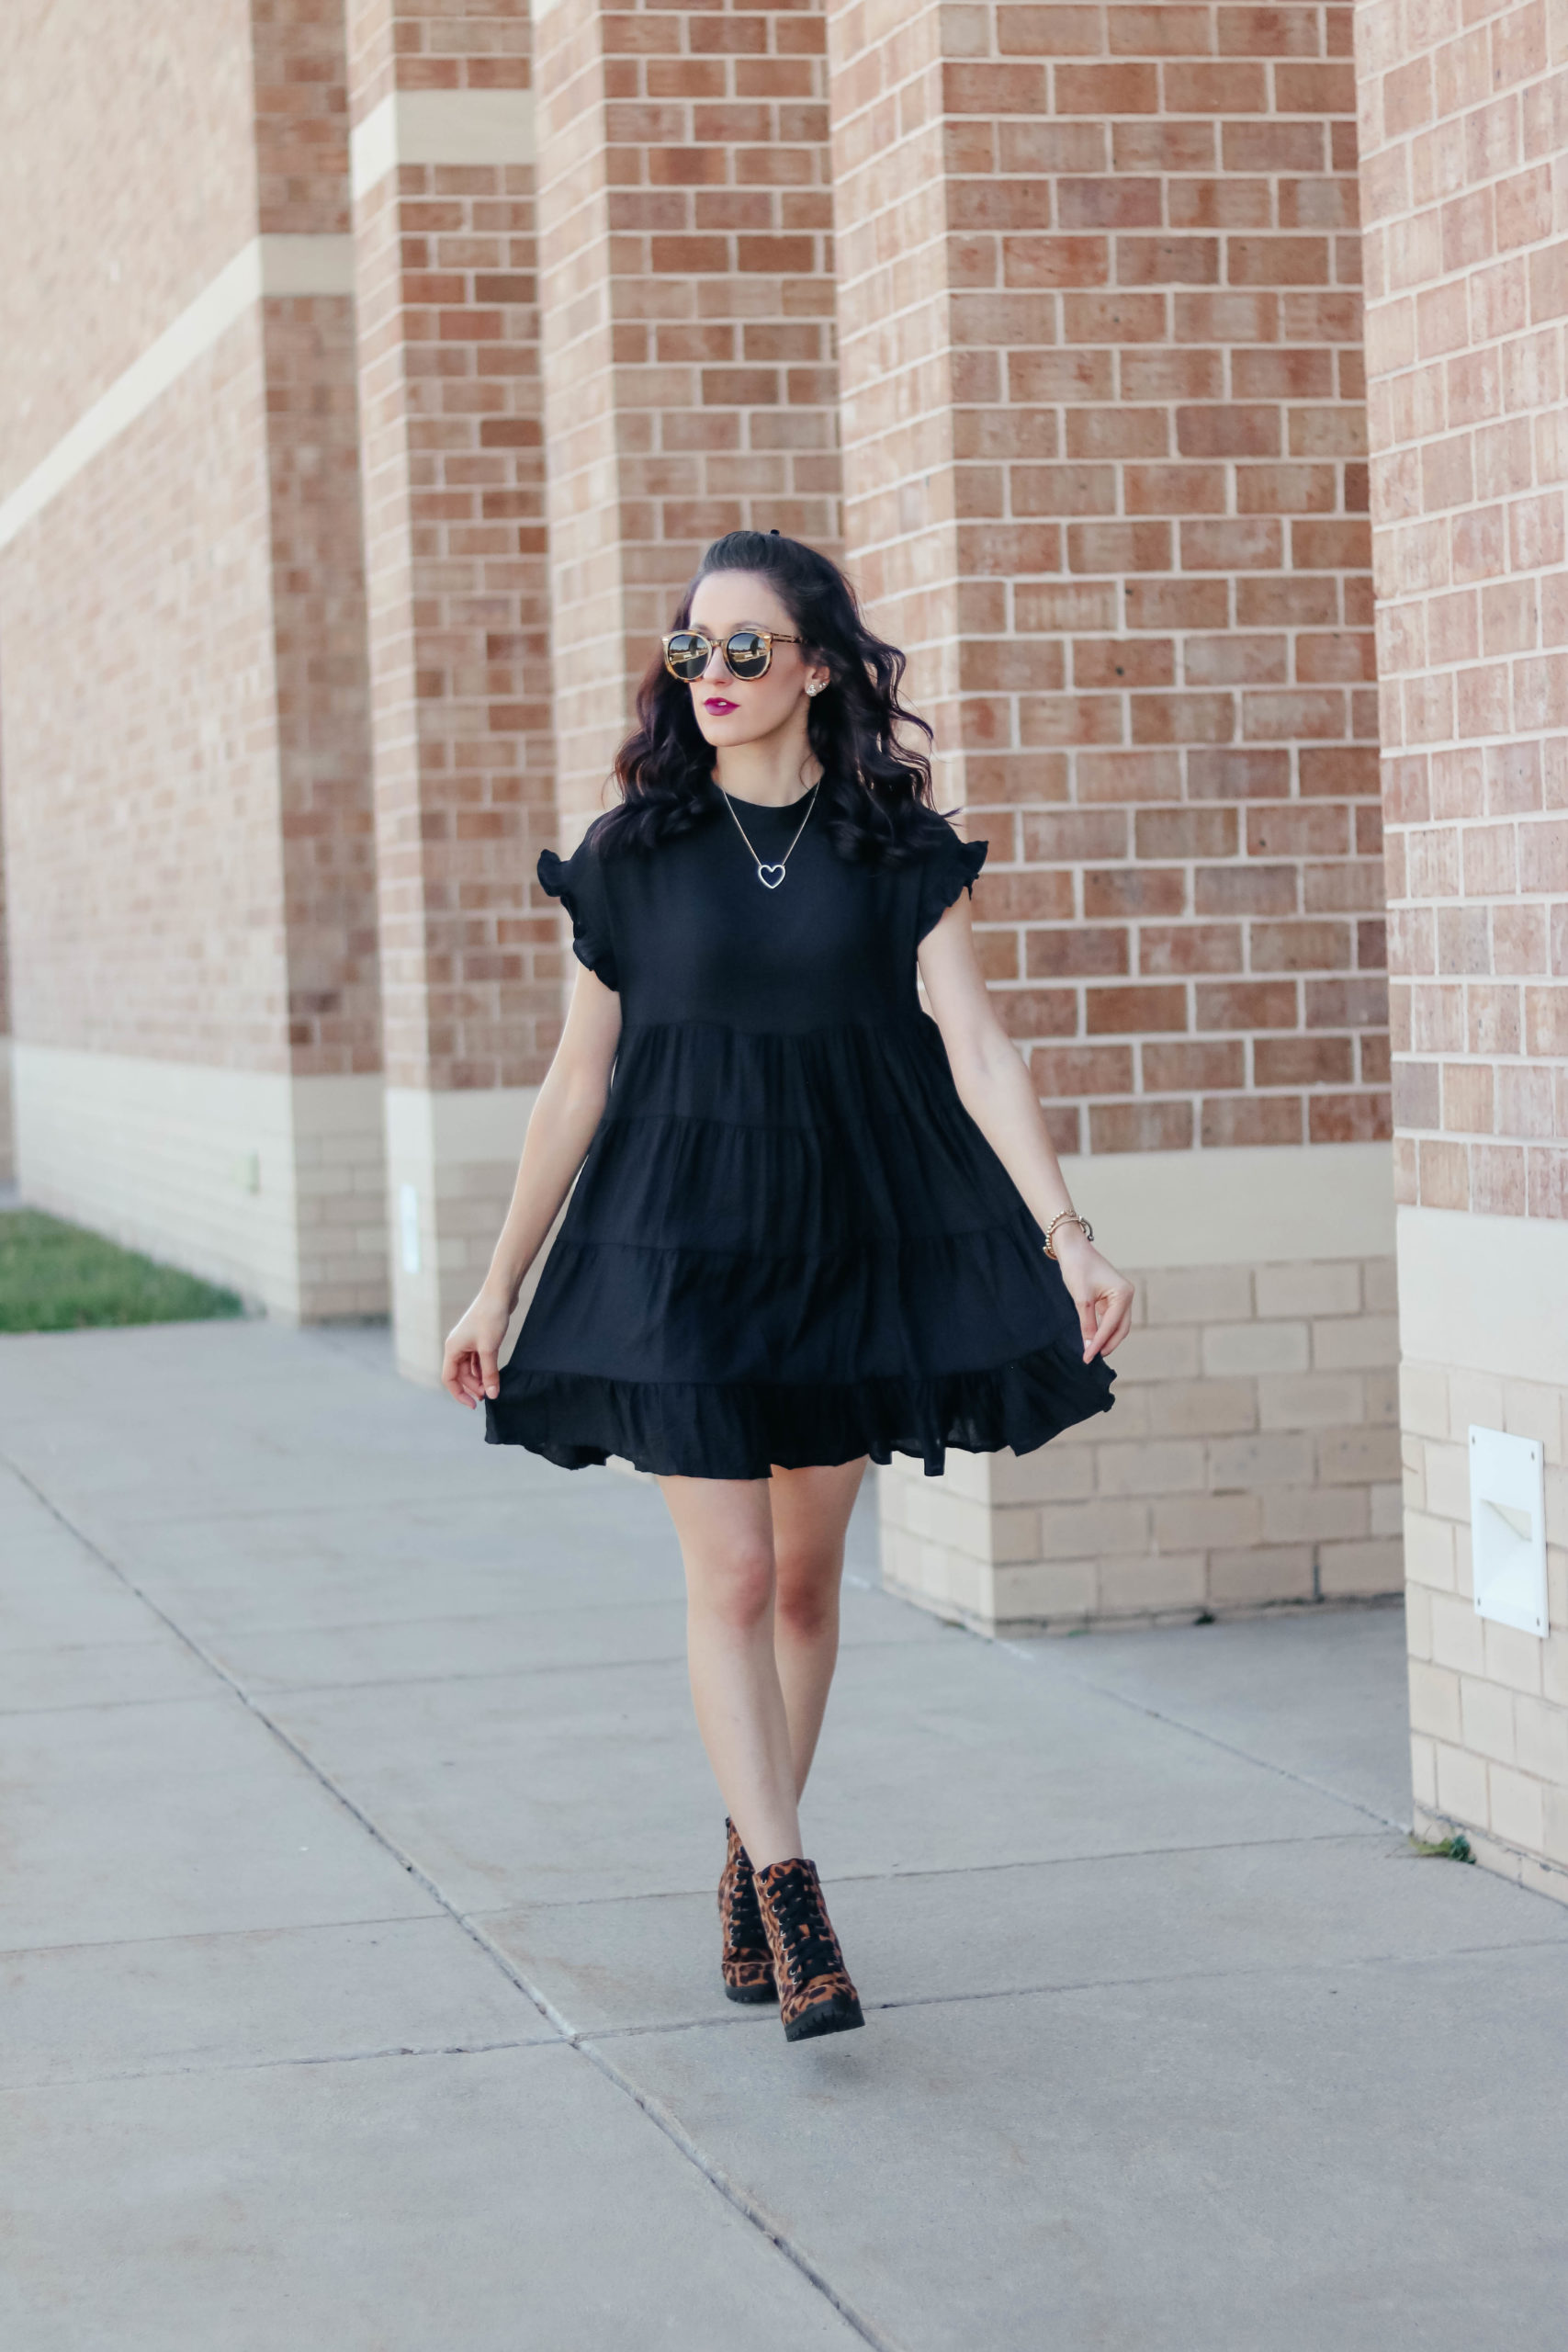 BLACK RUFFLE DRESS - #AskE featuring Comfy + Cute Walking Shoes? Gallery wall hanging hacks? Egg chair? + MORE - on Coming Up Roses